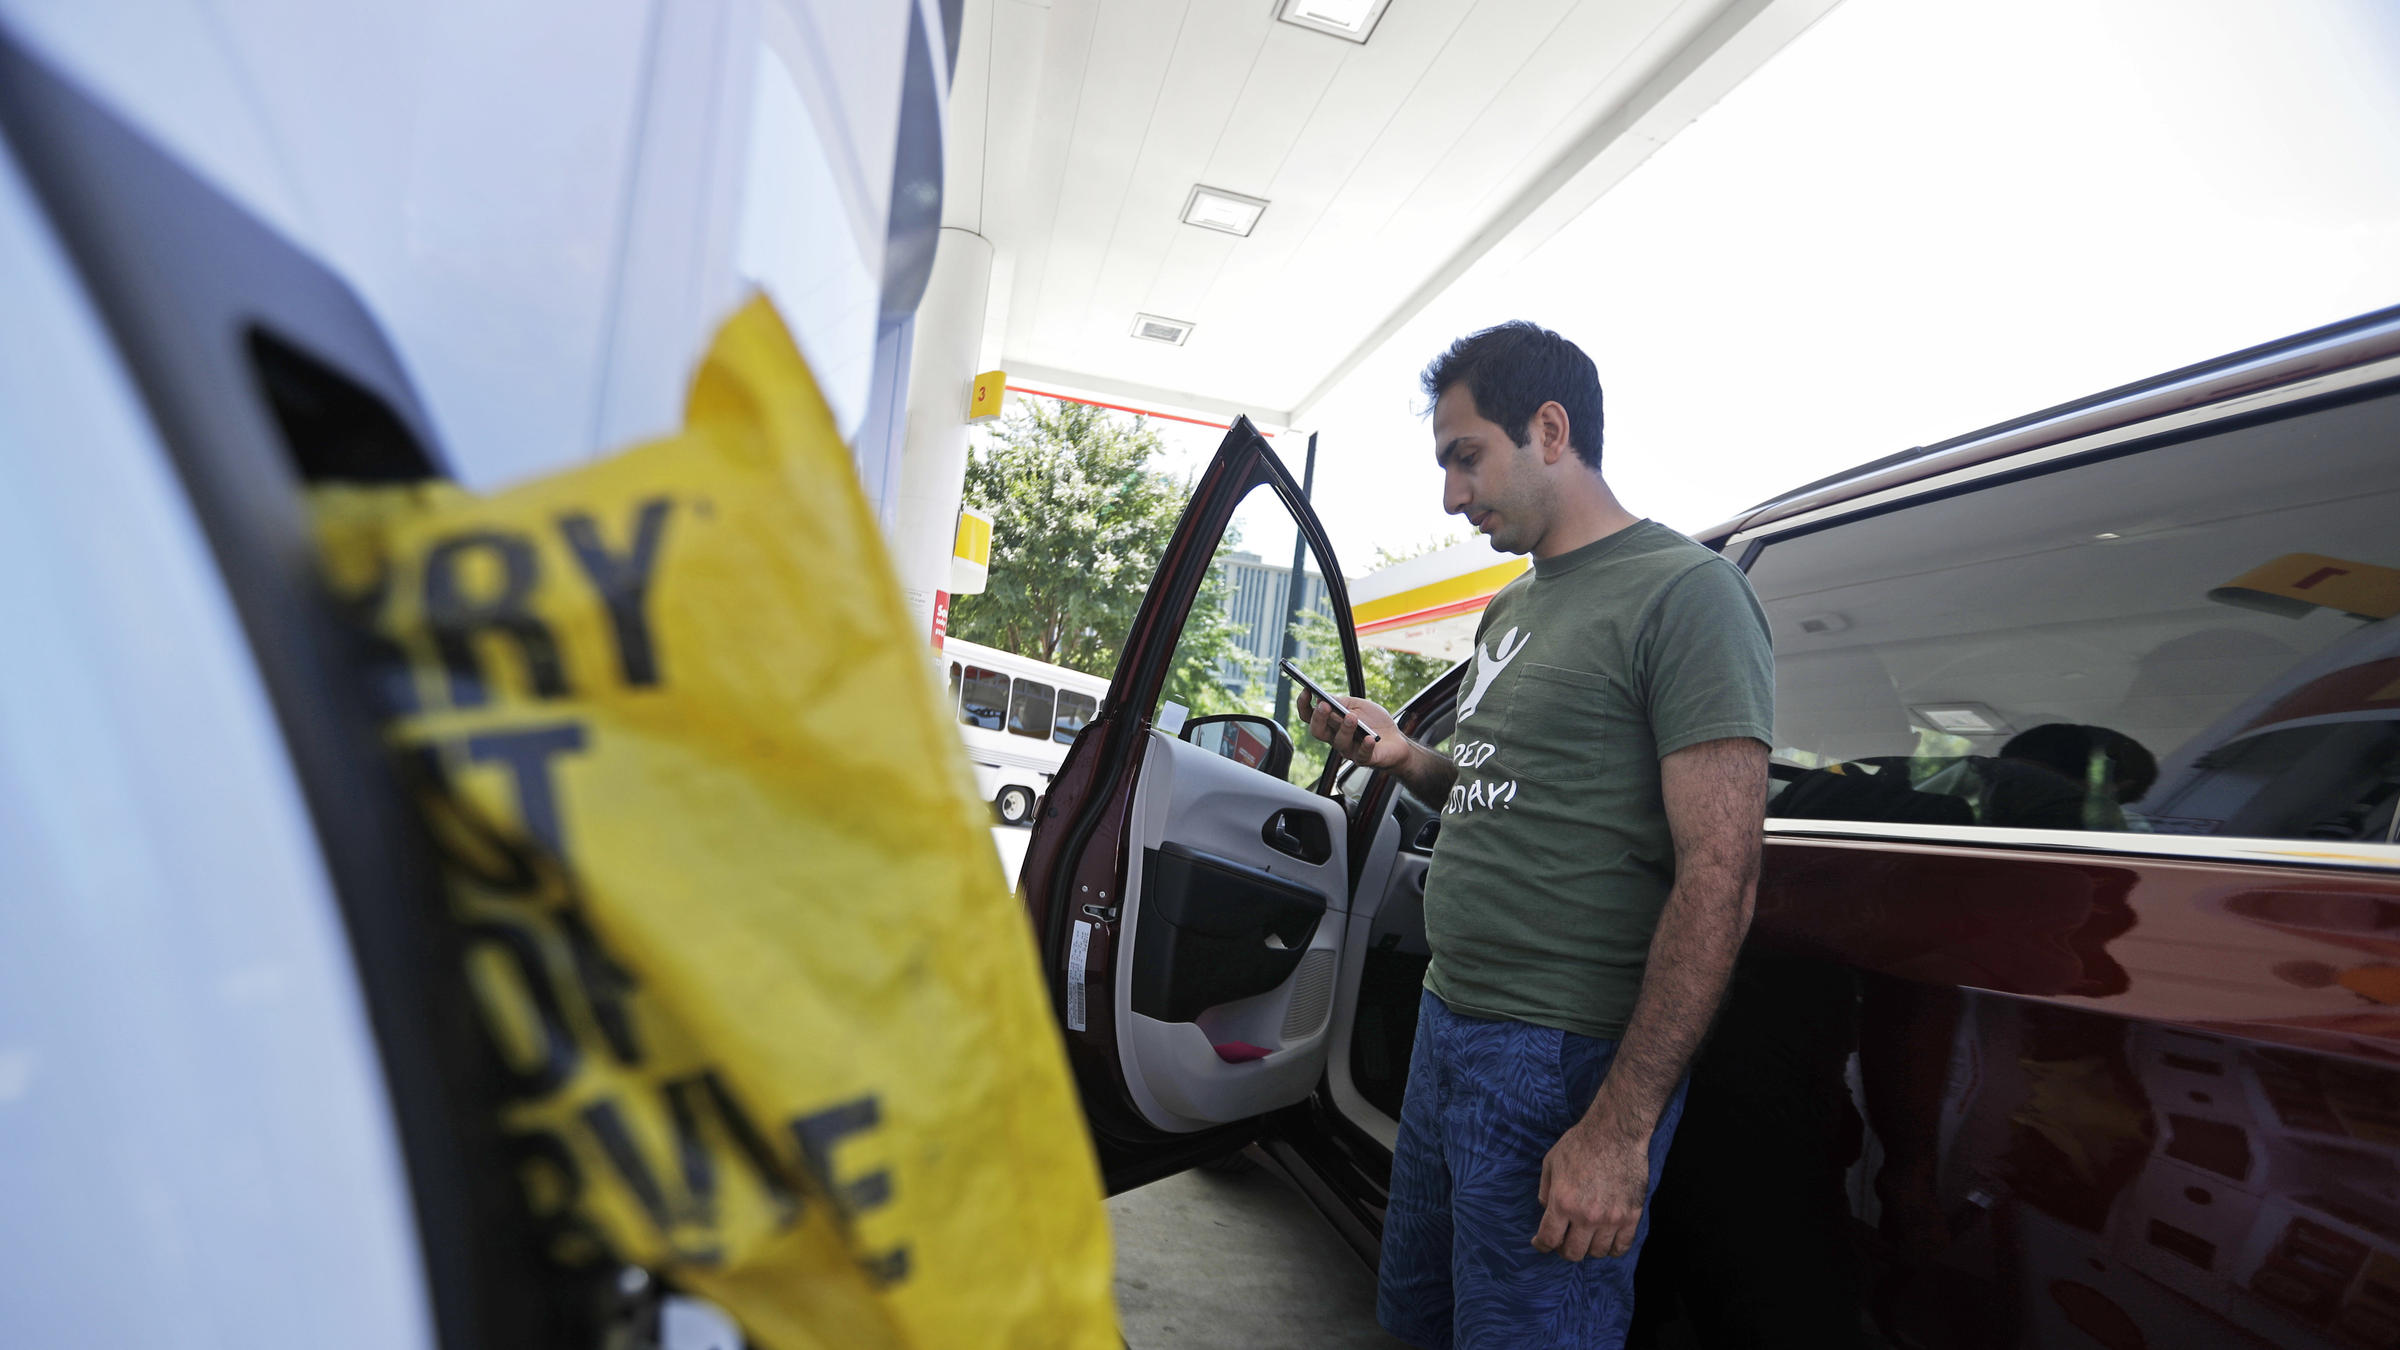 Company aims to restart gasoline pipeline Wednesday evening